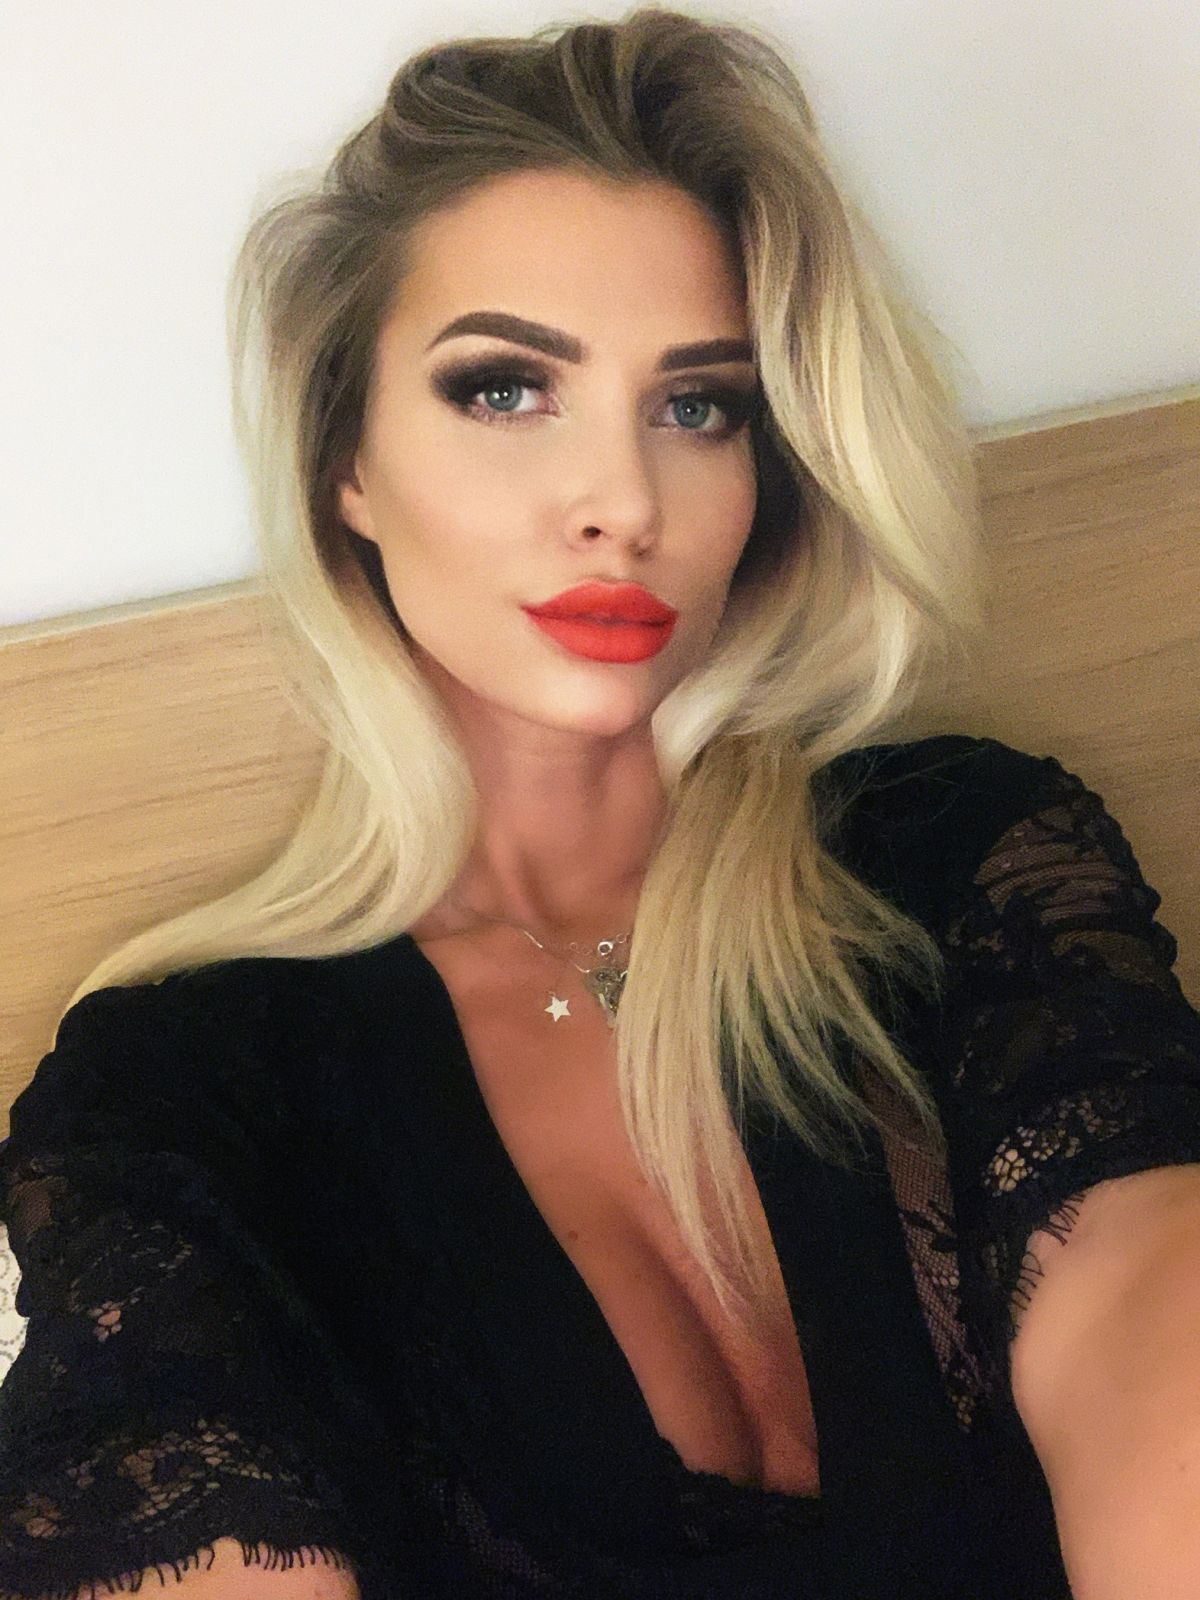 Onlyfans Liara onlyfans leaked